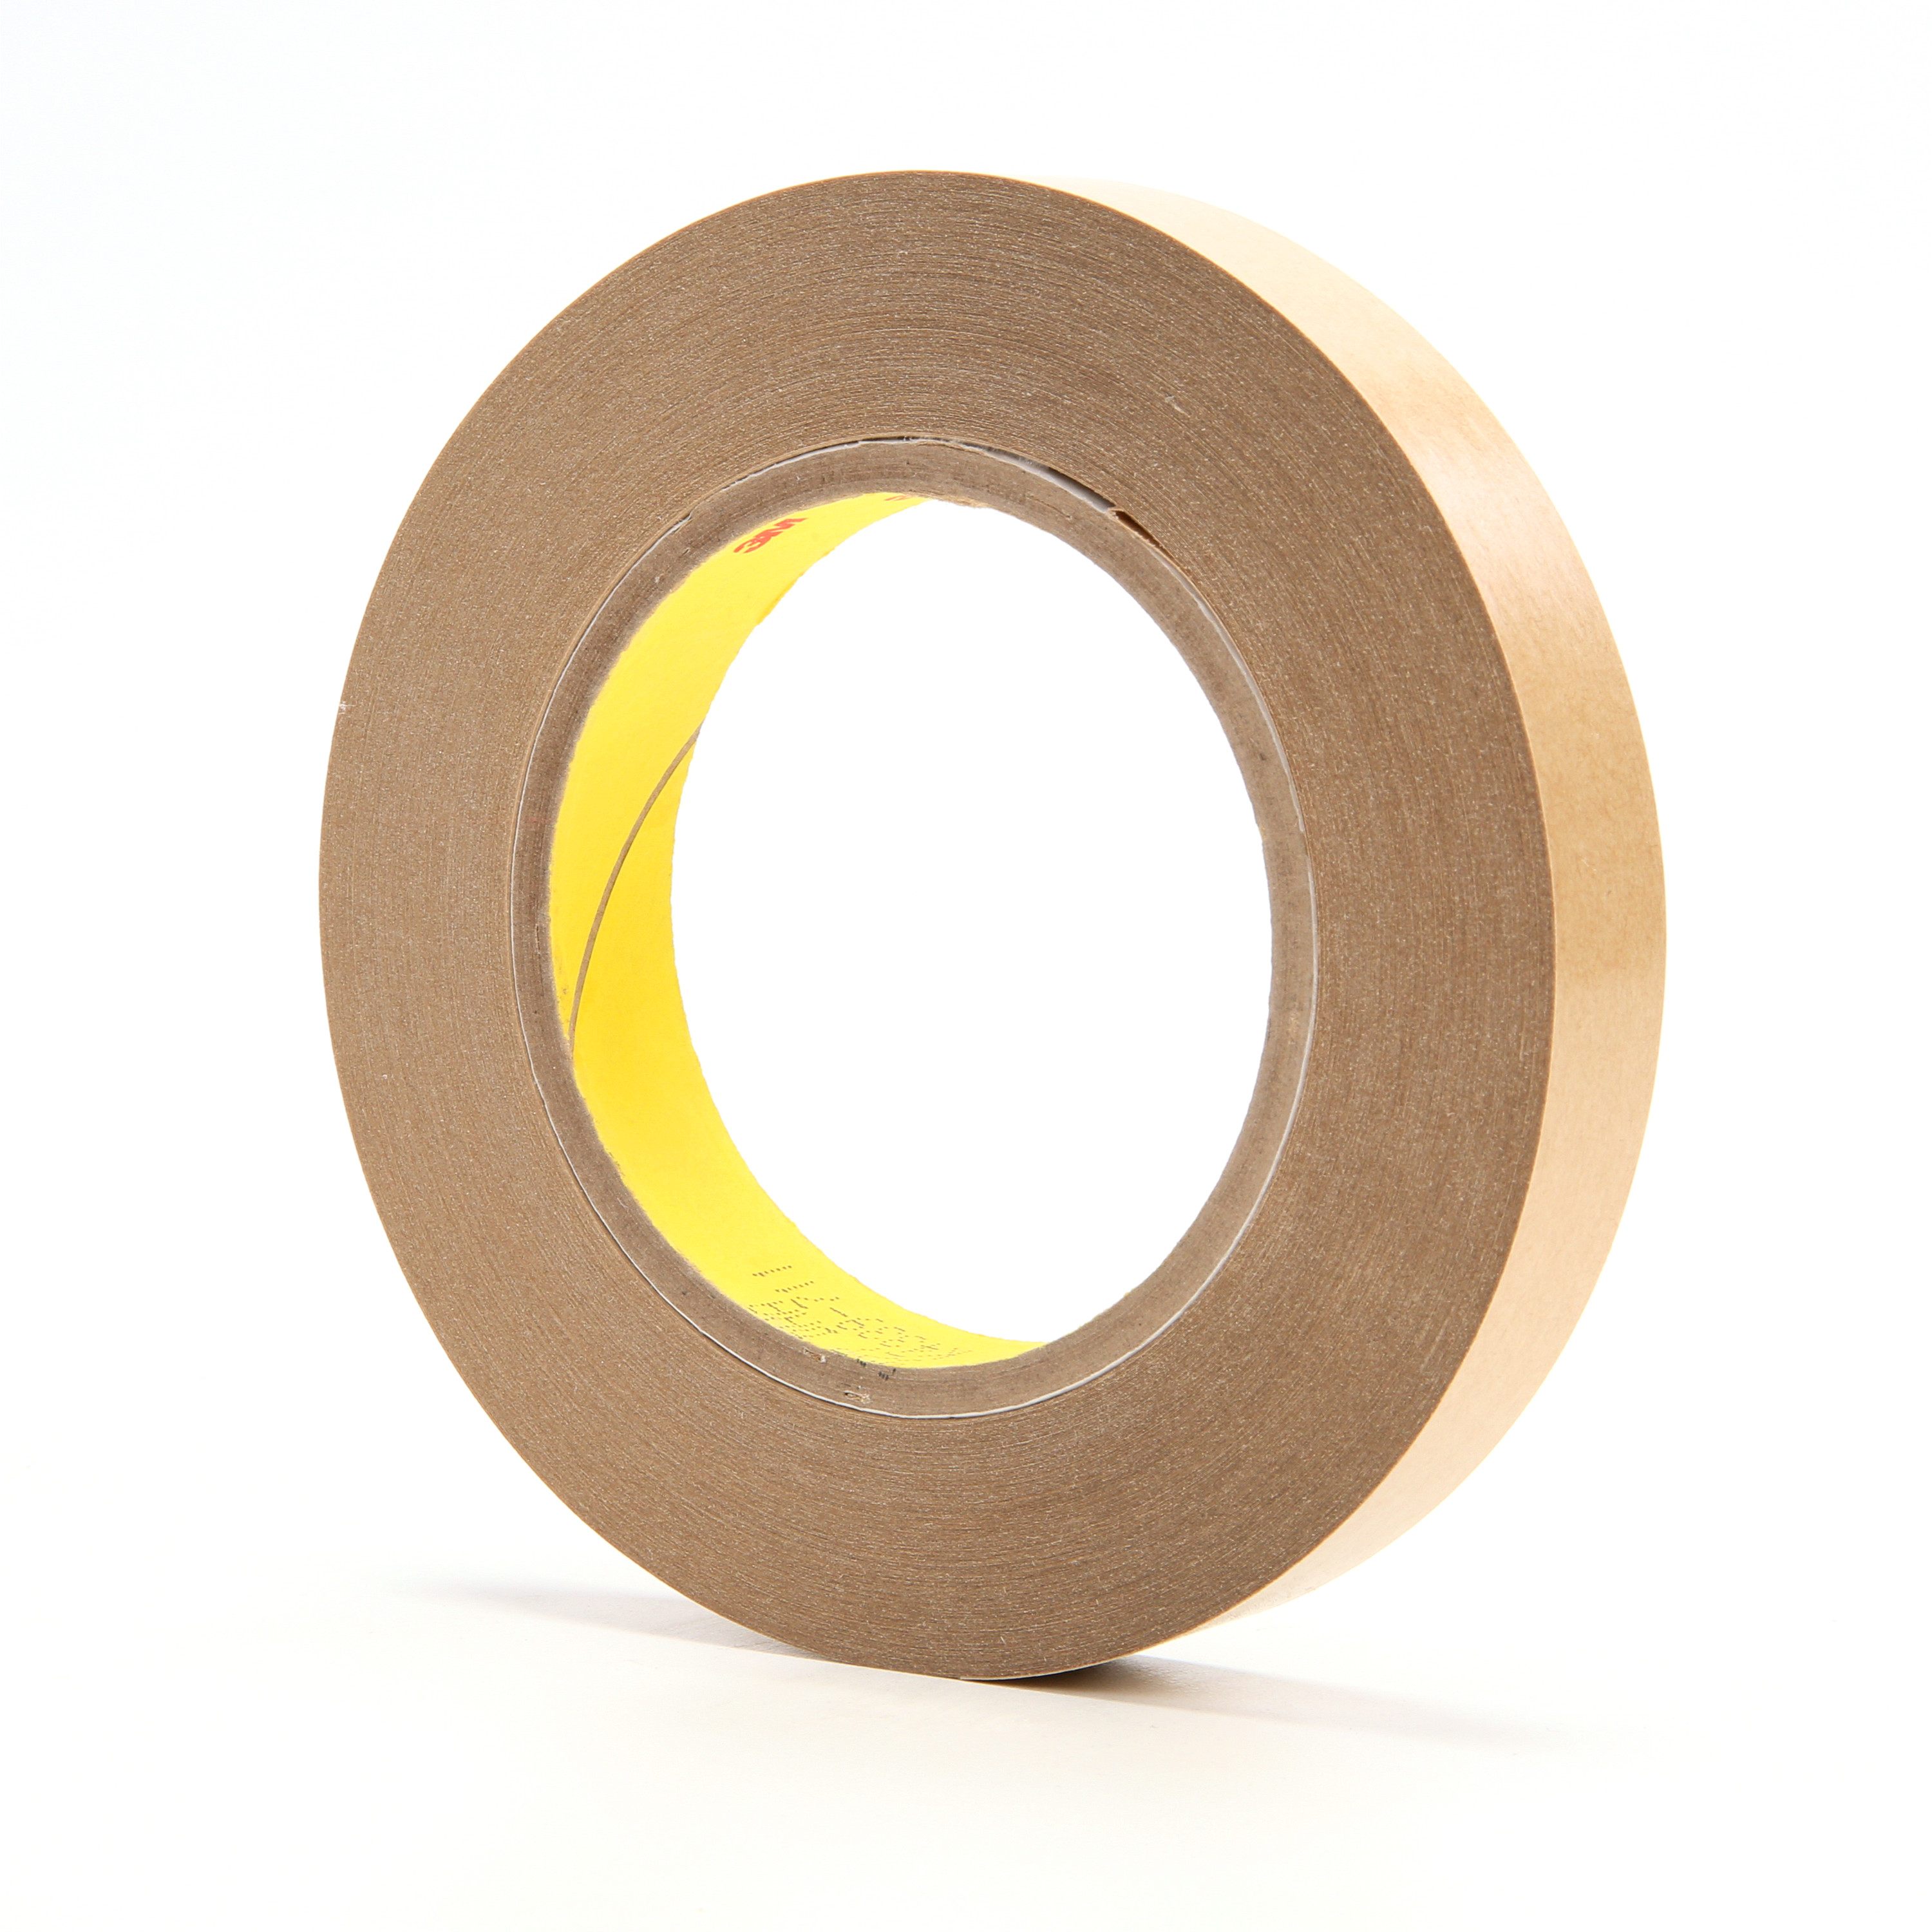 3M™ Adhesive Transfer Tape 927, Clear, 3/4 in x 60 yd, 2 mil, 48 rolls per case